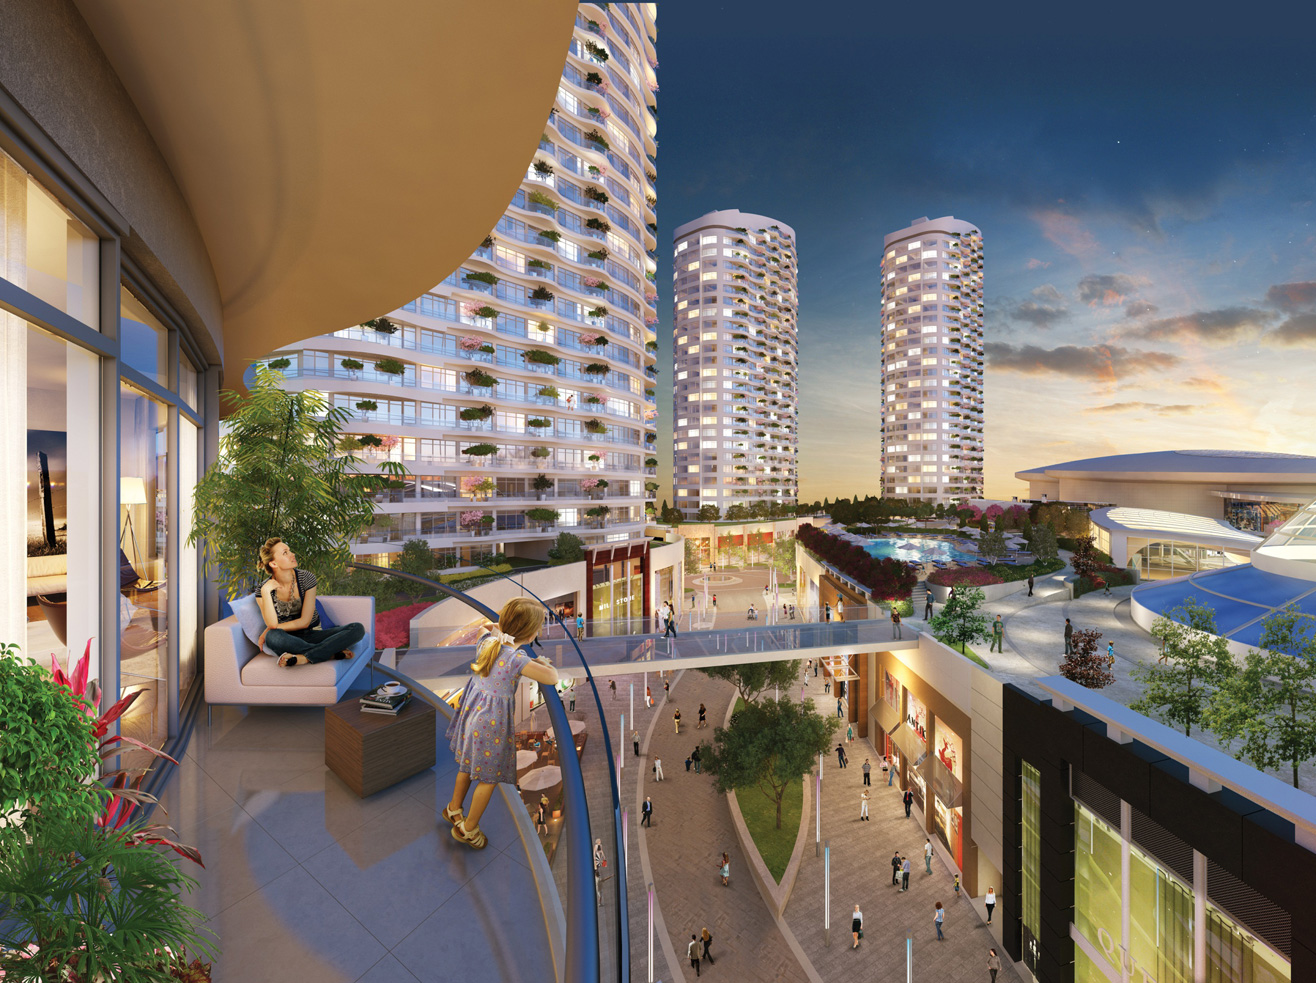 Mall of istanbul sales office ares architecture - Mall Of Istanbul Sales Office Ares Architecture 7